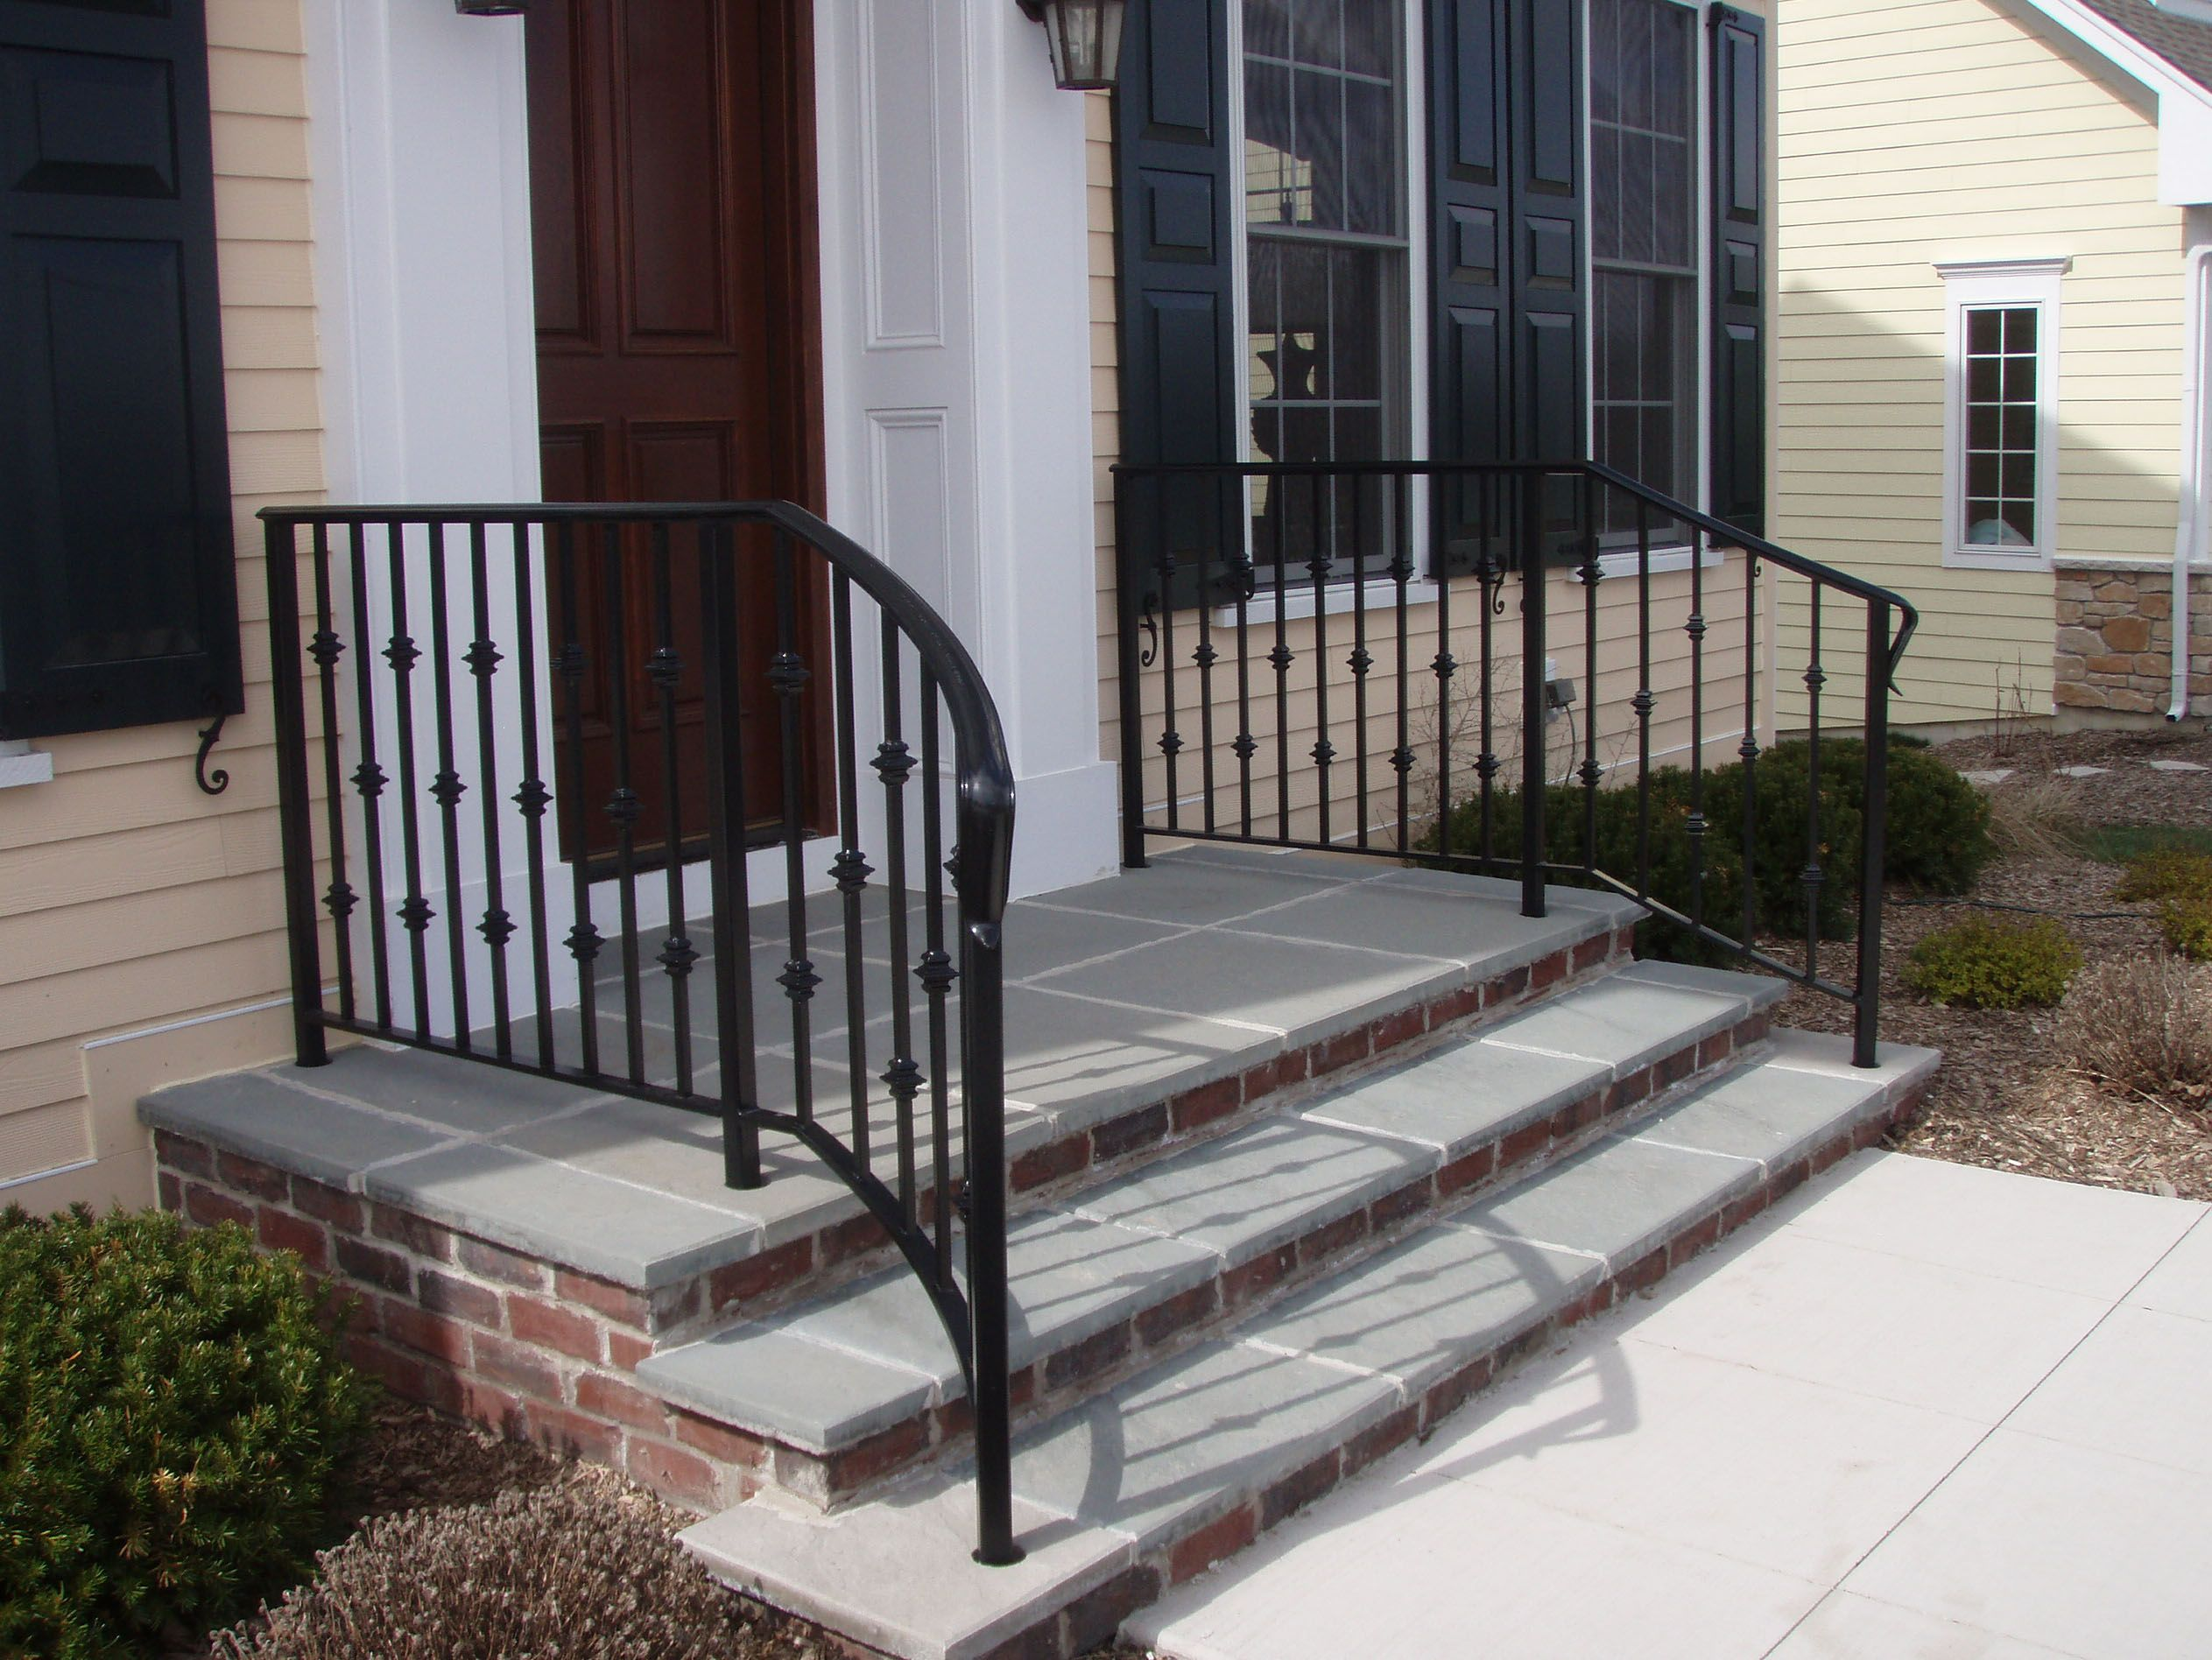 Economy Iron Products Railings Outdoor Outdoor Stair Railing | Wrought Iron Railings For Steps | Custom | Metal | 2 Step | Rough Iron | Exterior